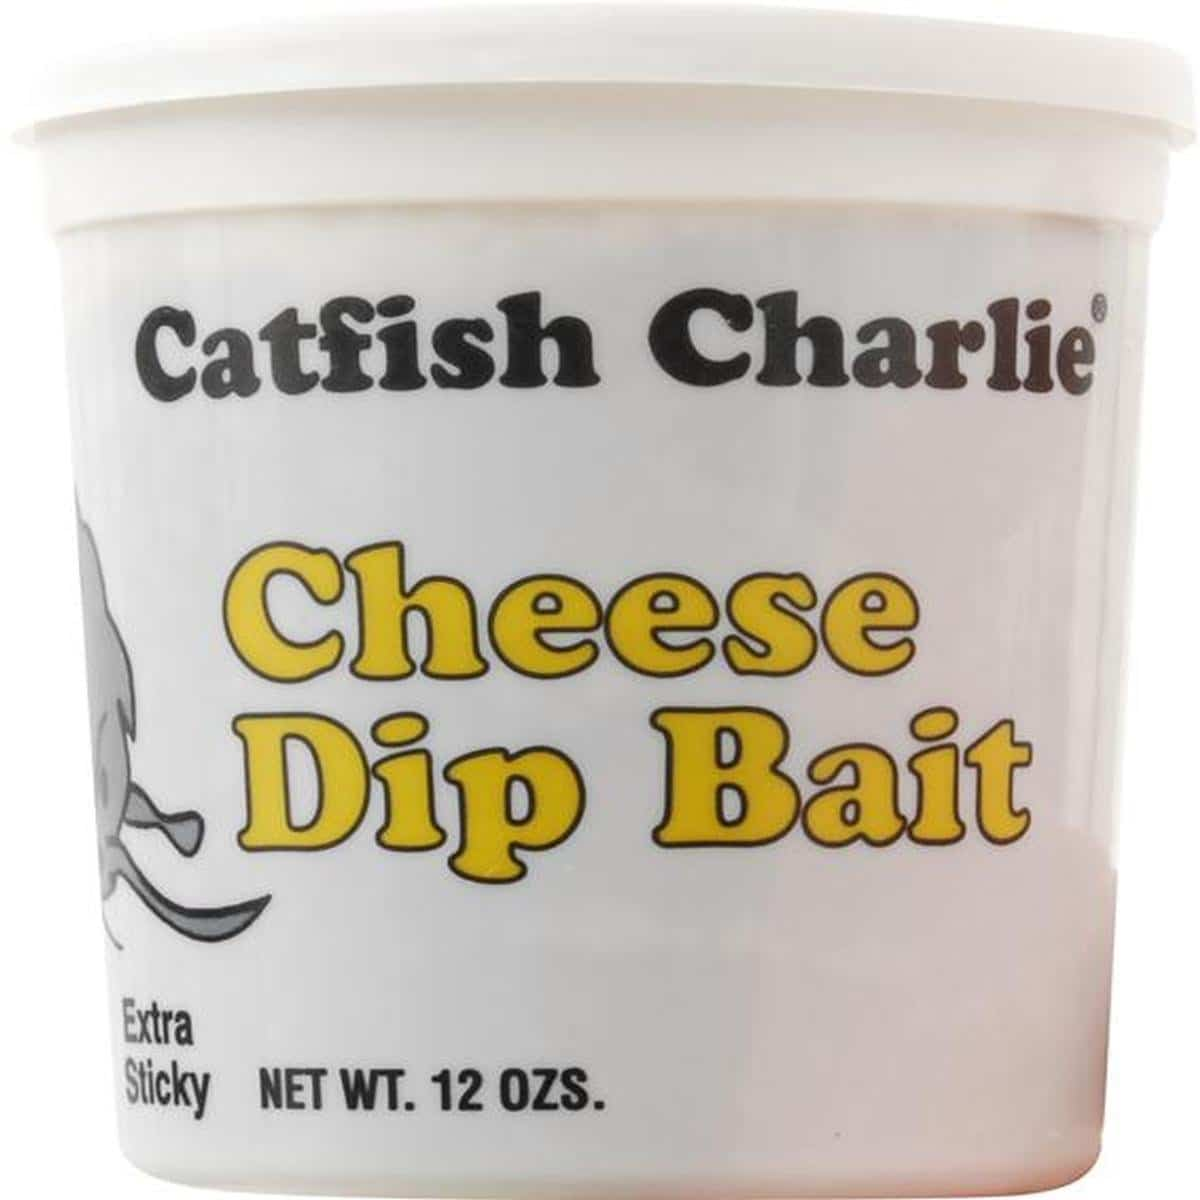 Cheese dip catfish bait